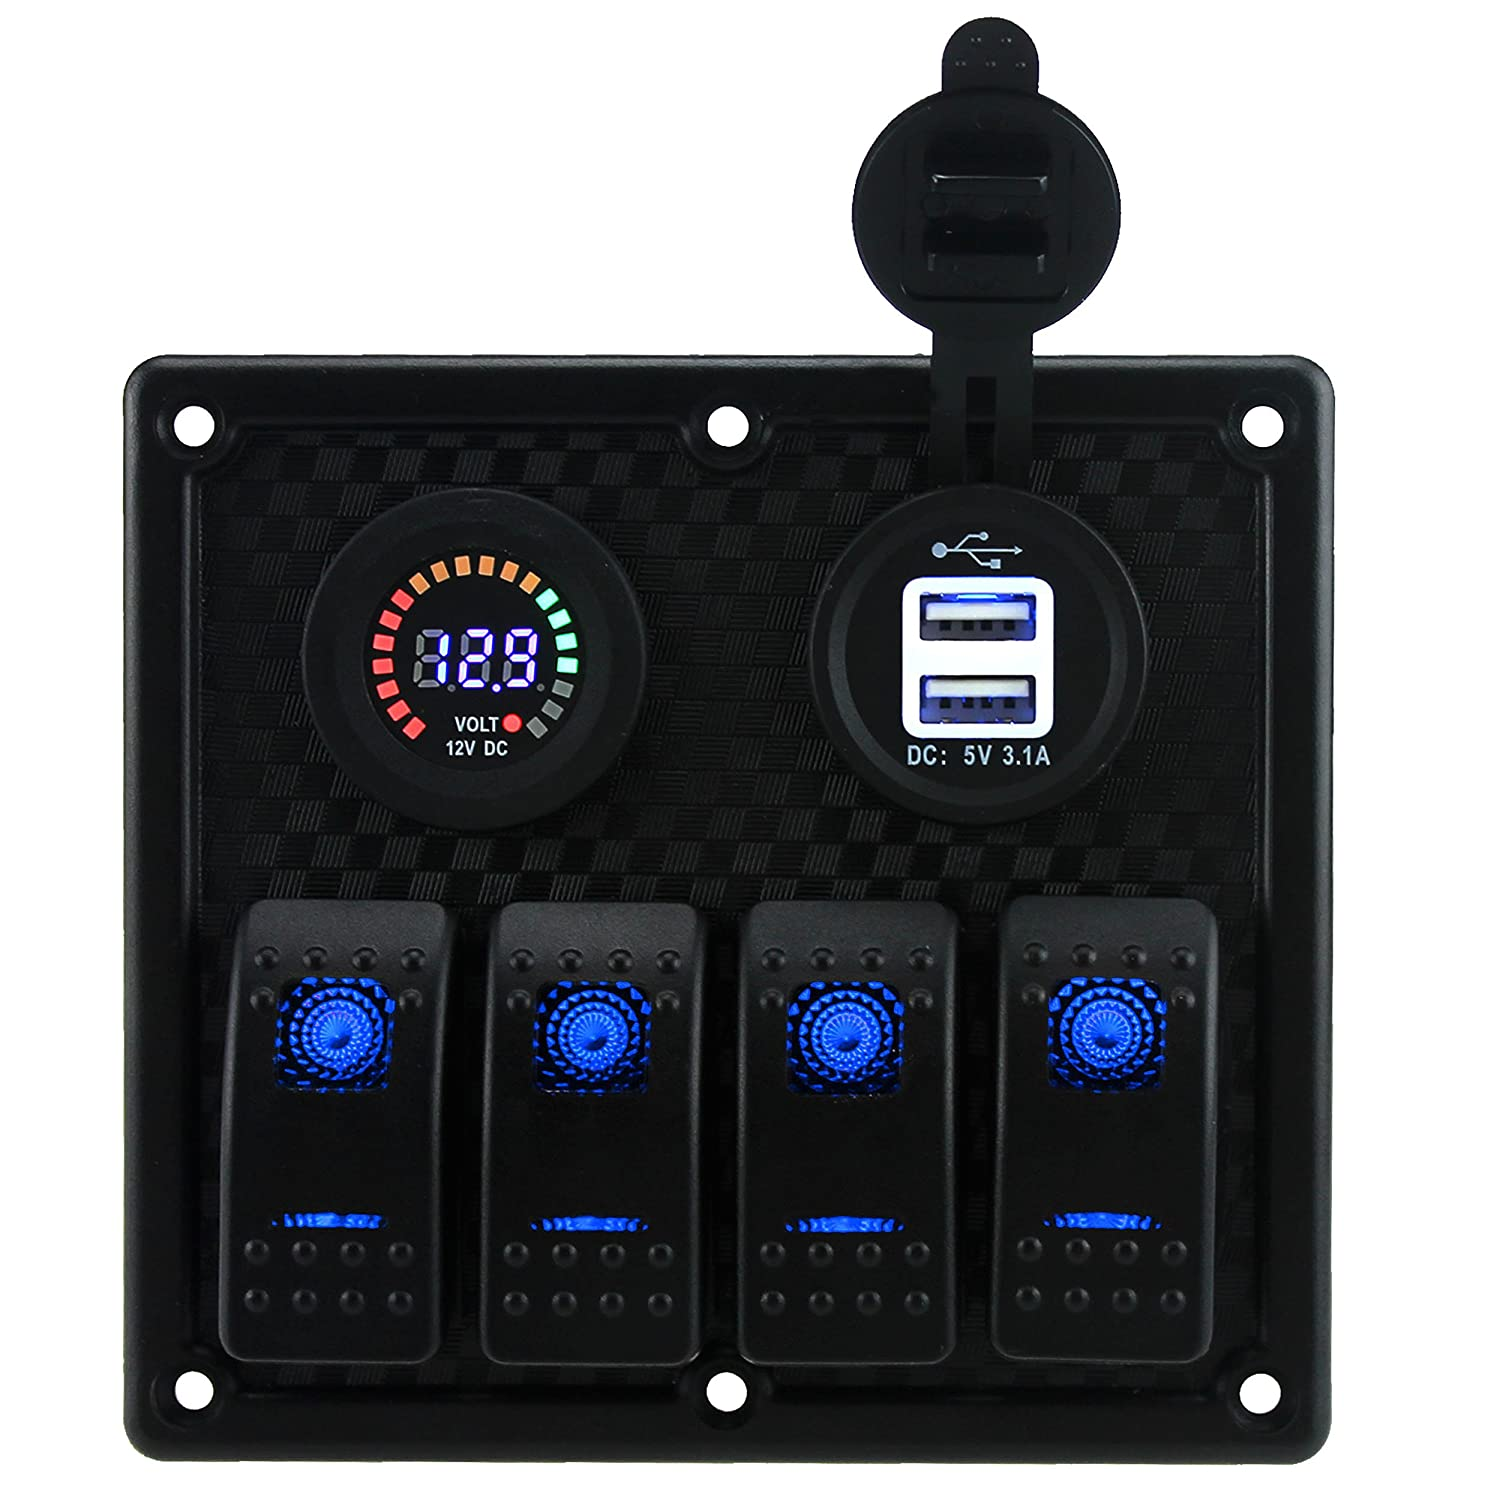 Iztoss 4 Gang Toggle Rocker Switch Panel With Dual 31a New Wire Marine Products Switches Access Spst Usb 12v Flashing Alarm Display Voltmeter Inline Fuses And Decal Sticker Labels For